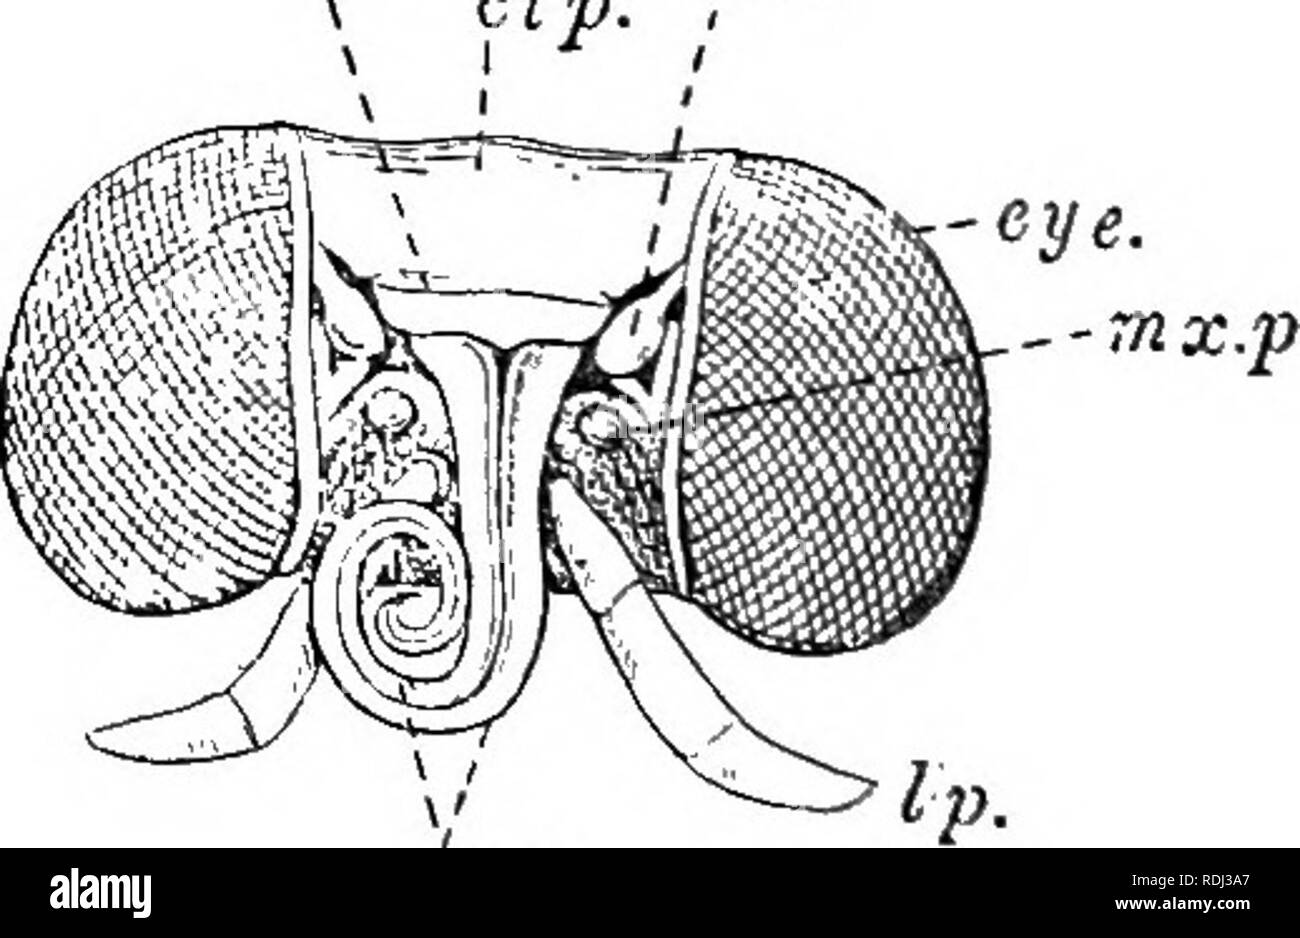 . A manual of elementary zoology . Zoology. Ibr. cip. ! md. -eye. -l.p.. Fig. 189.—A side view of the head of a butterfly. at., Antenna; eye] l.J>., labial palp; nix., maxilla. Fig. 190.—The head of a tiger moth (Arctia caja), seen from in front and partly from below, after the removal of the scales. clj>., Clypeus; eye; lp., labial palp; Ibr., labrum; md.^ structure supposed to repre- sent a mandible; mx., maxillae; mx.p., maxillary palp. within the body of its parent or under shelter of an egg shell, like the young of man or birds or the early stages of. Please note that these images a - Stock Image